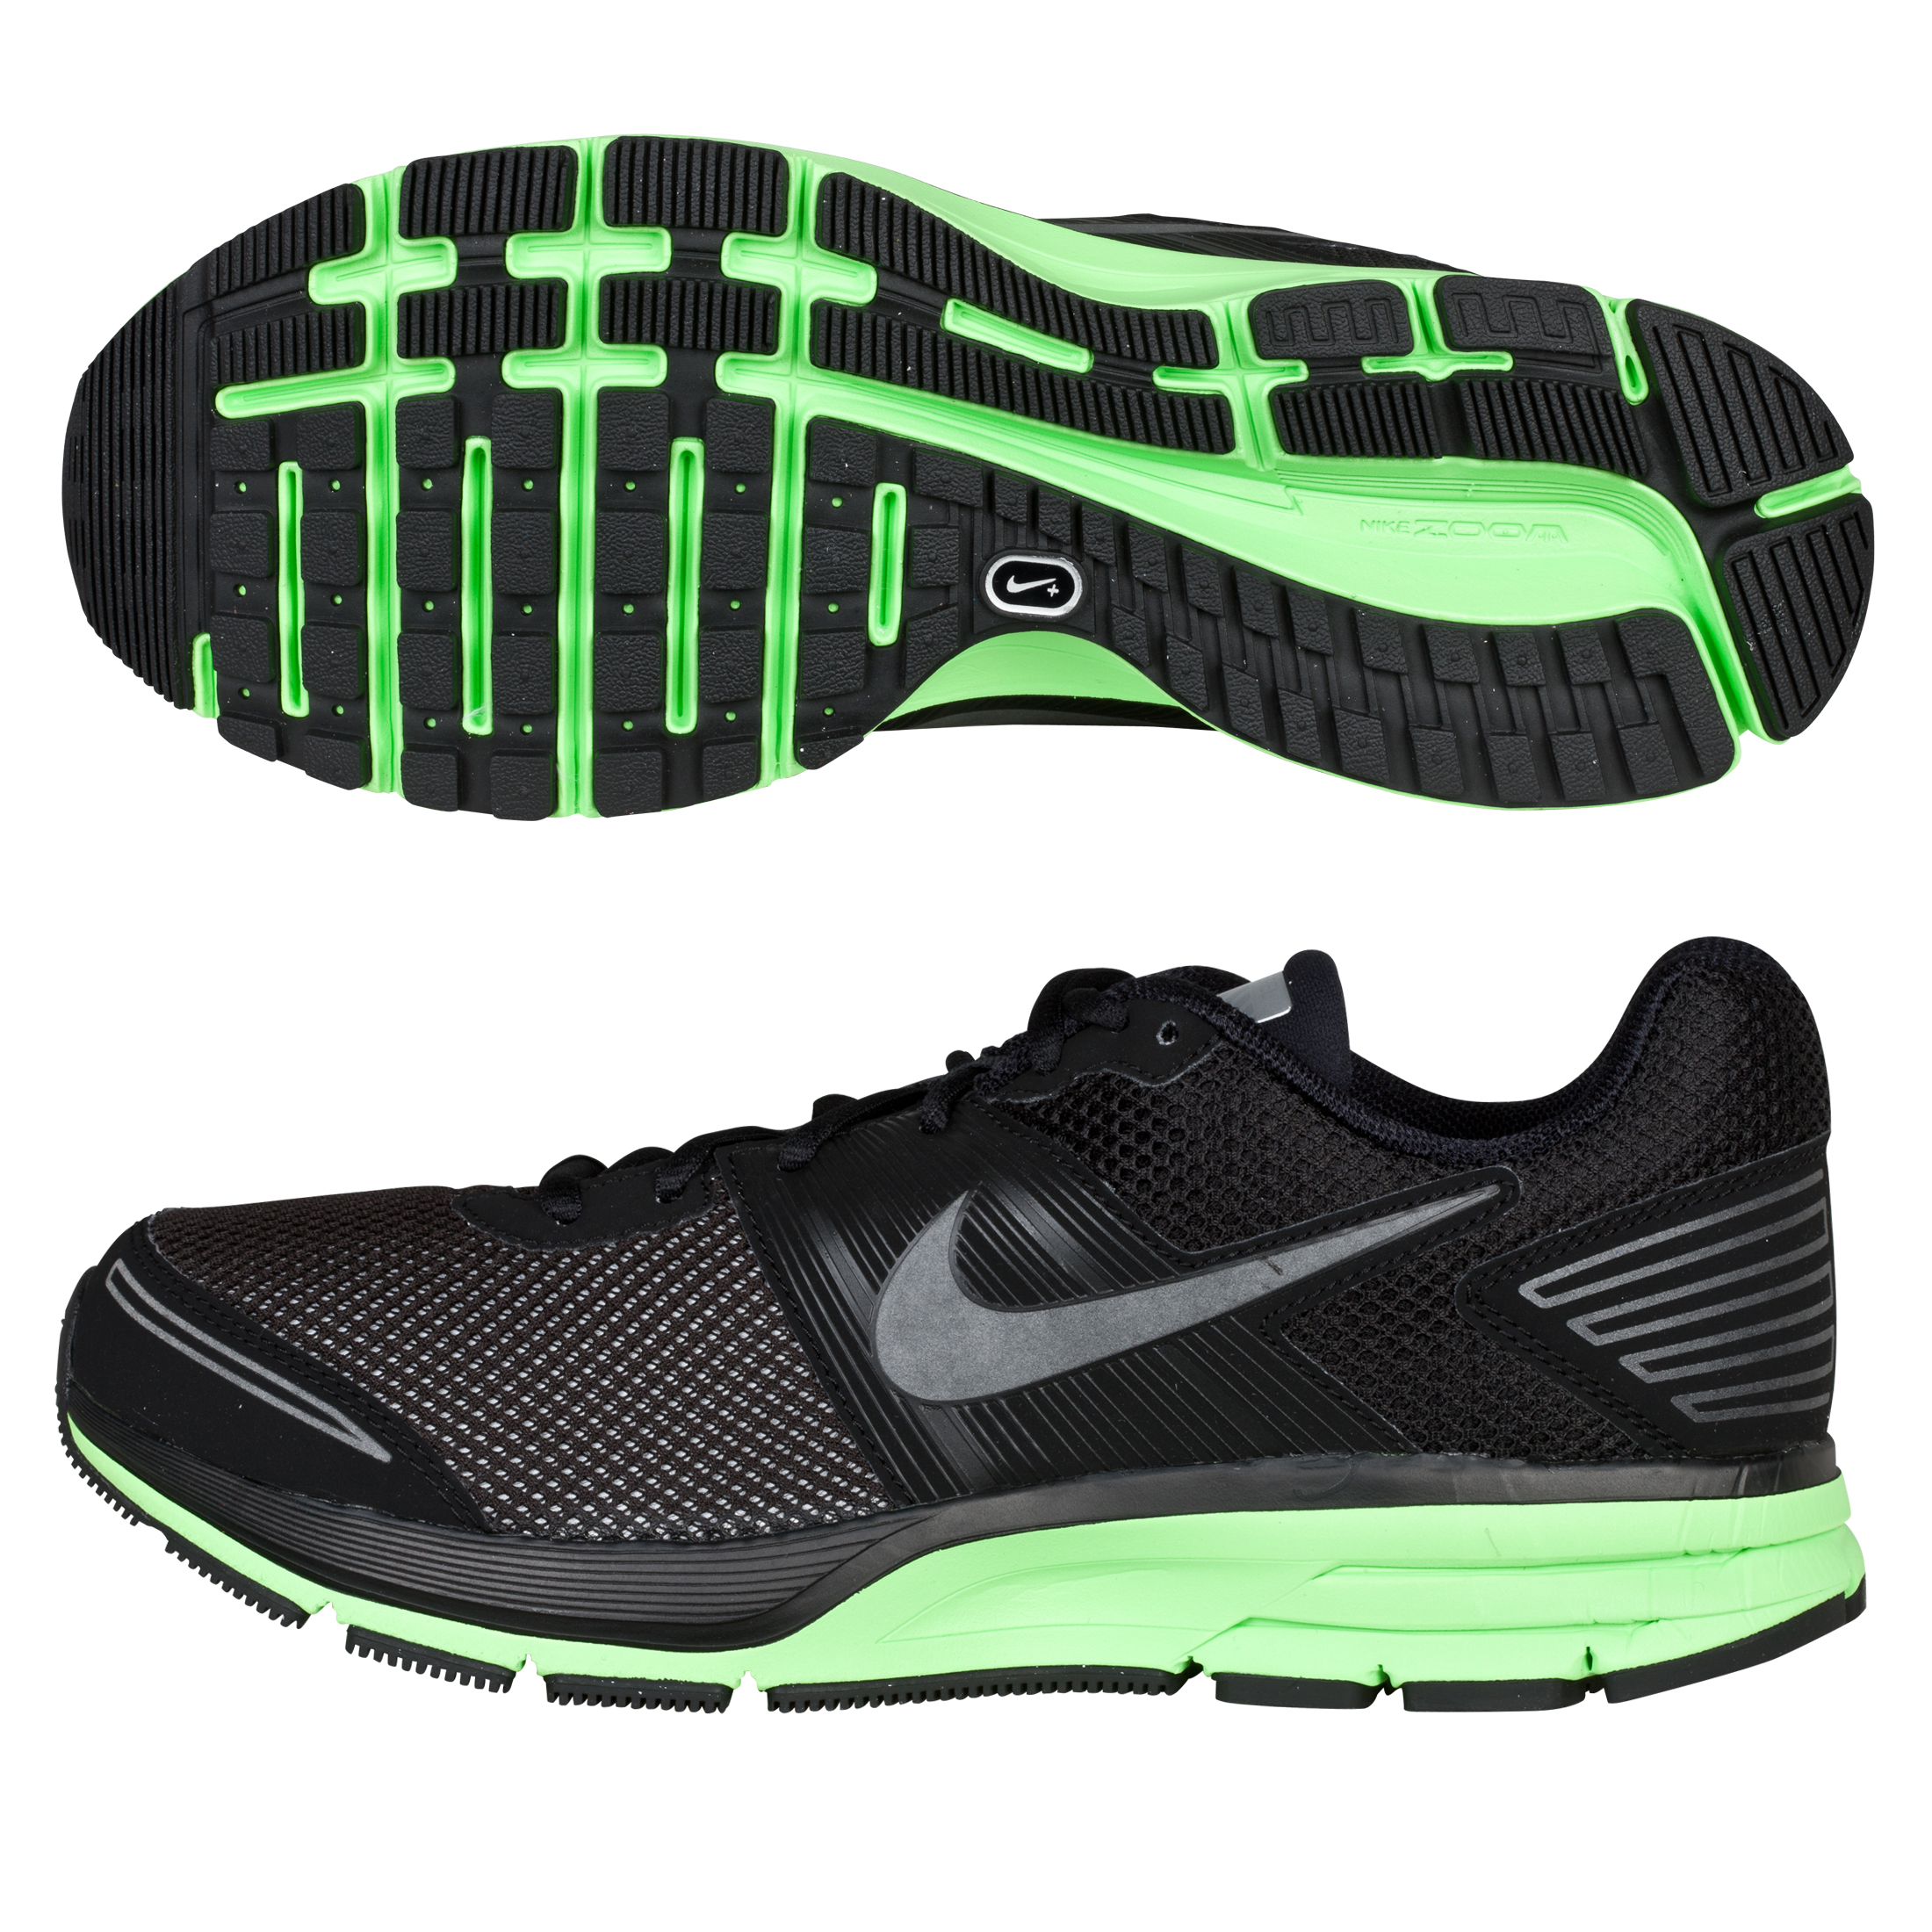 Nike Air Pegasus(+) 29 Shield Trainers - Black/Electric Green